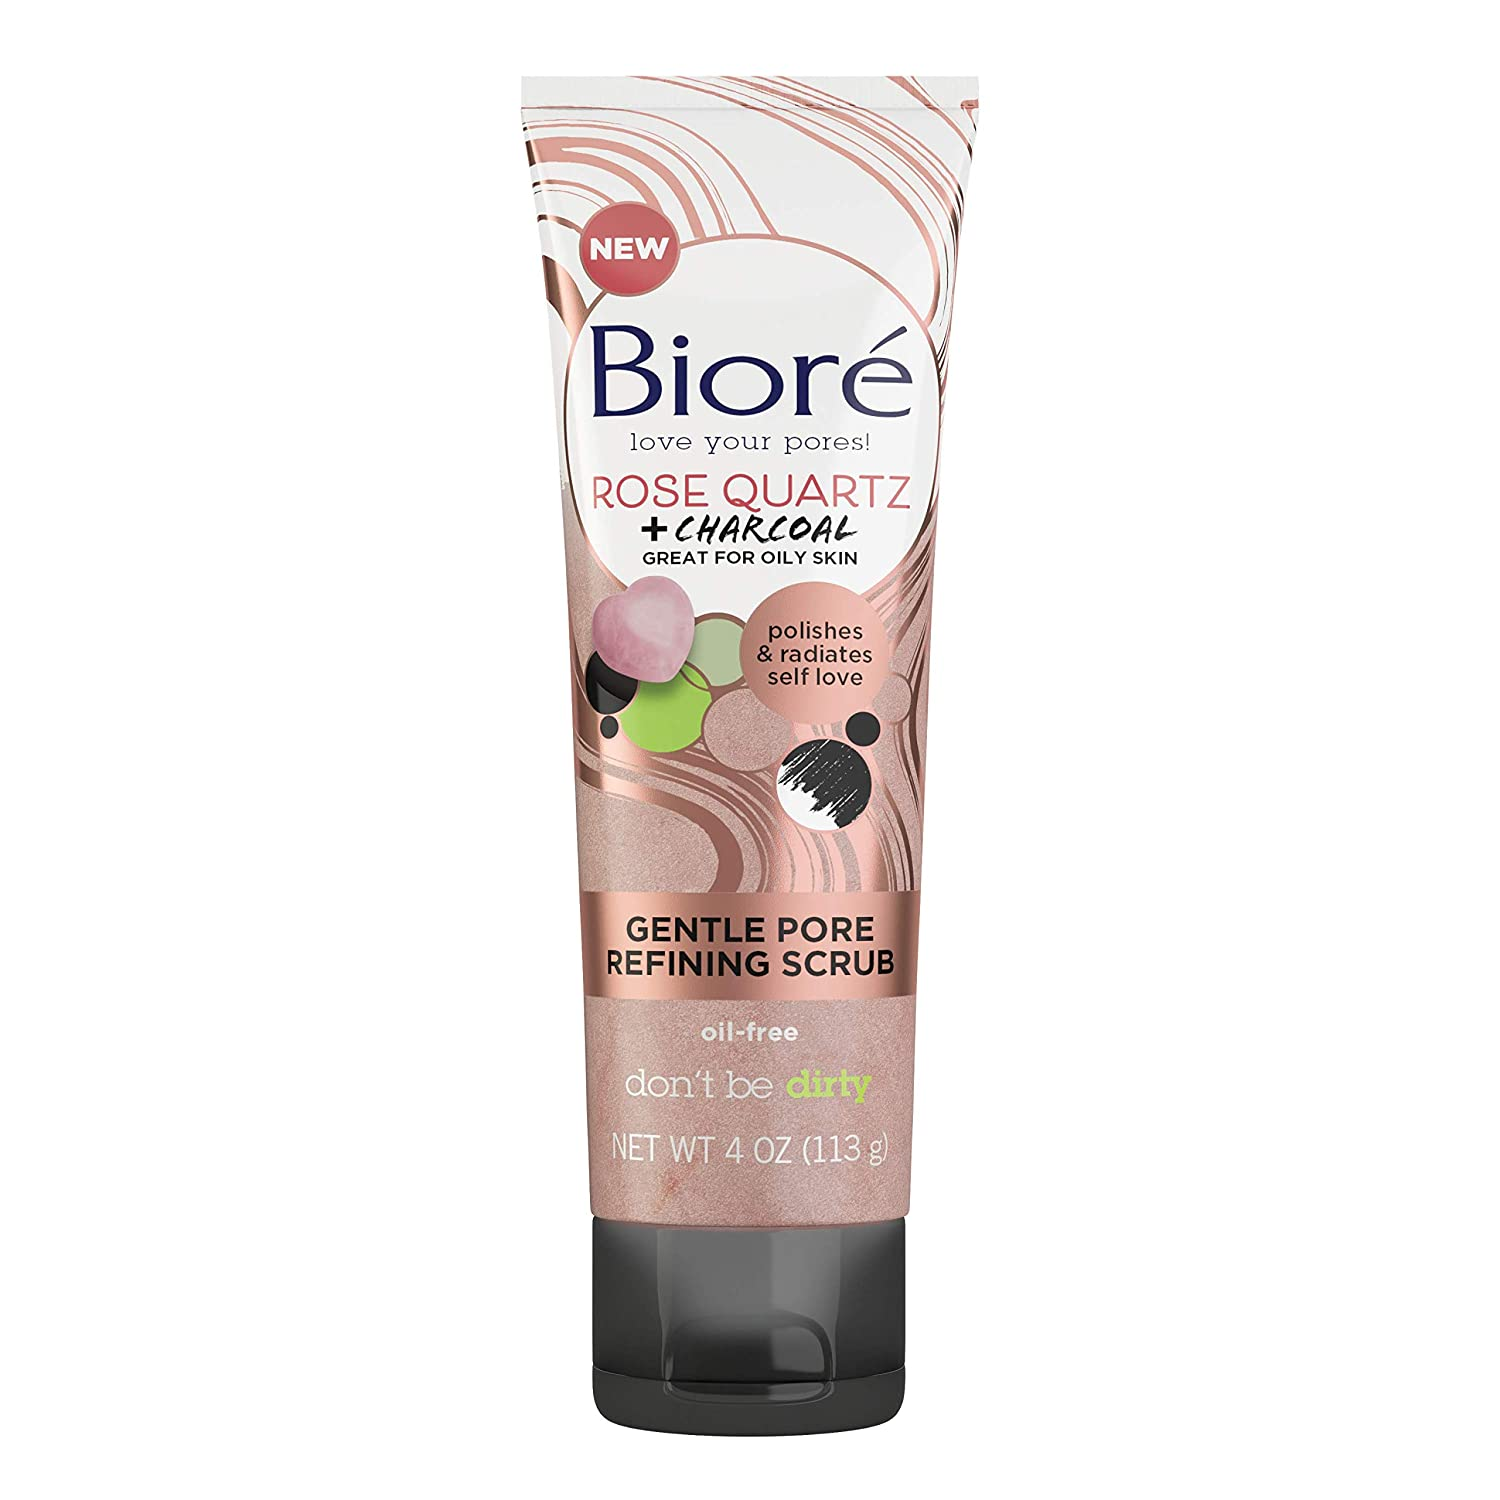 Bioré Rose Quartz With Charcoal Gentle Pore Refining scrub, exfoliating & Pore Minimizing Micro Crystal Facial Scrub, Oil Free, Dermatologist Tested, Cruelty Free, Vegan Friendly, Paraben Free